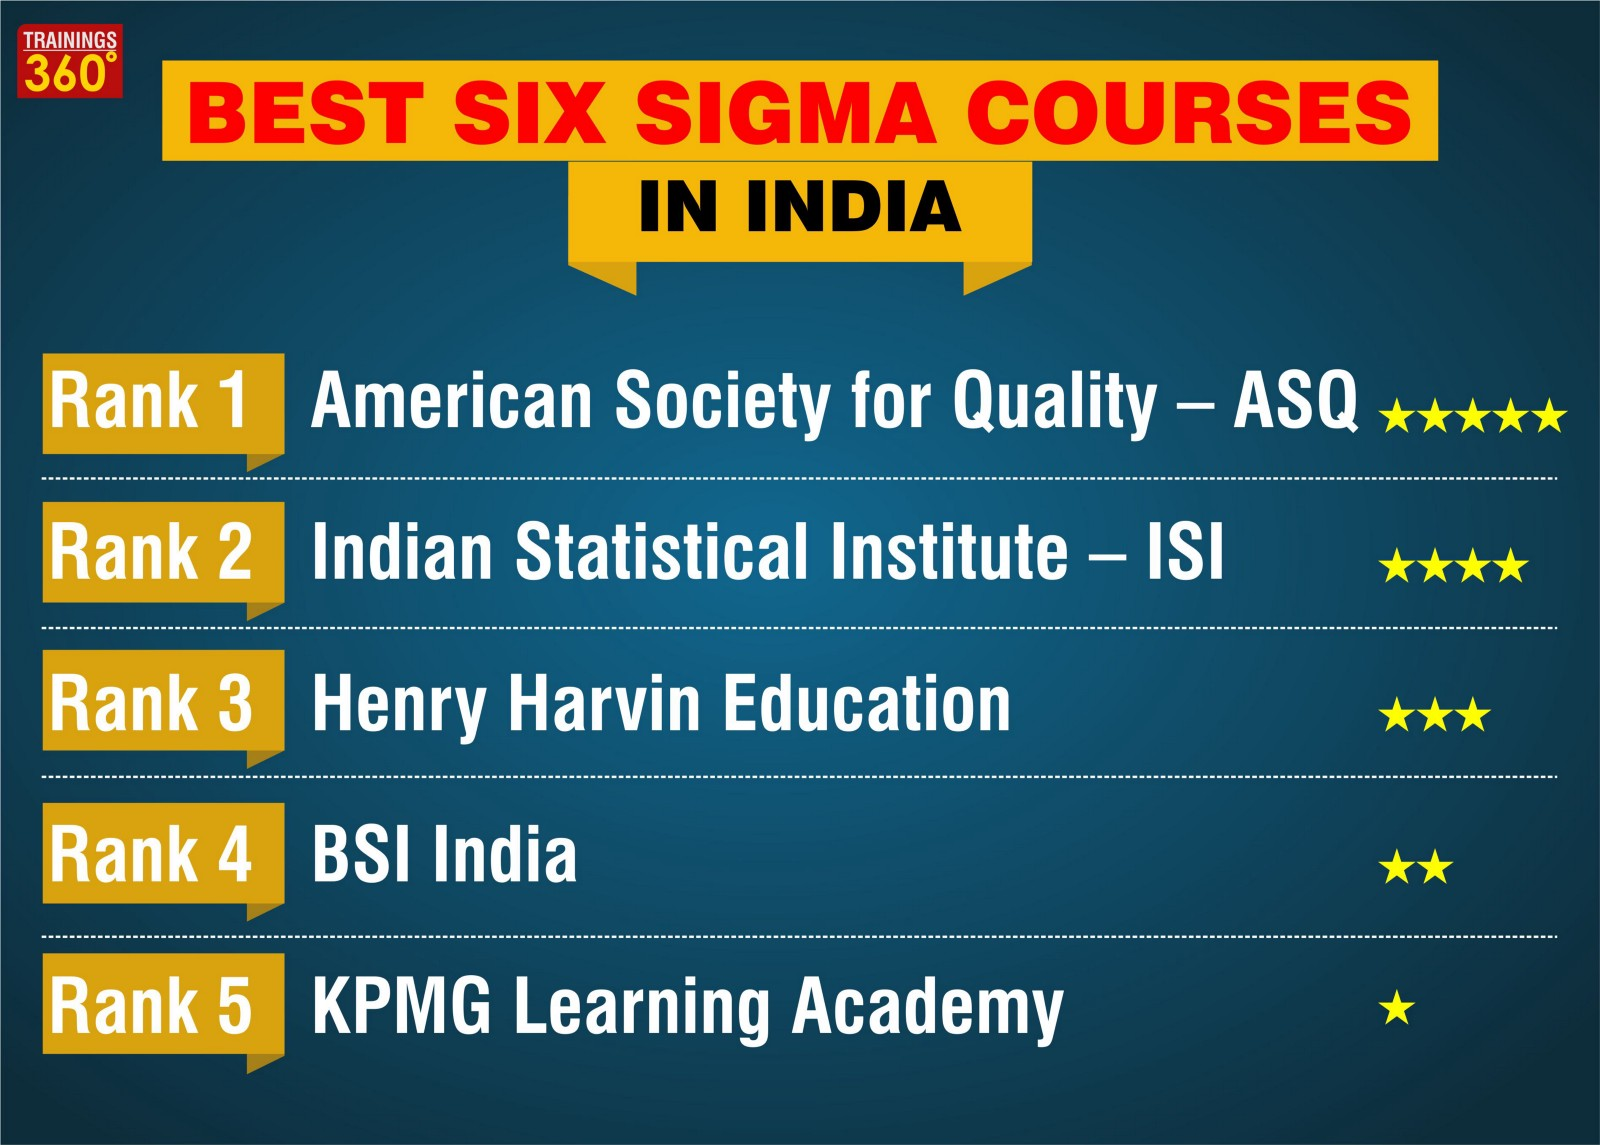 Best Six Sigma Courses In India Trainings360 Medium